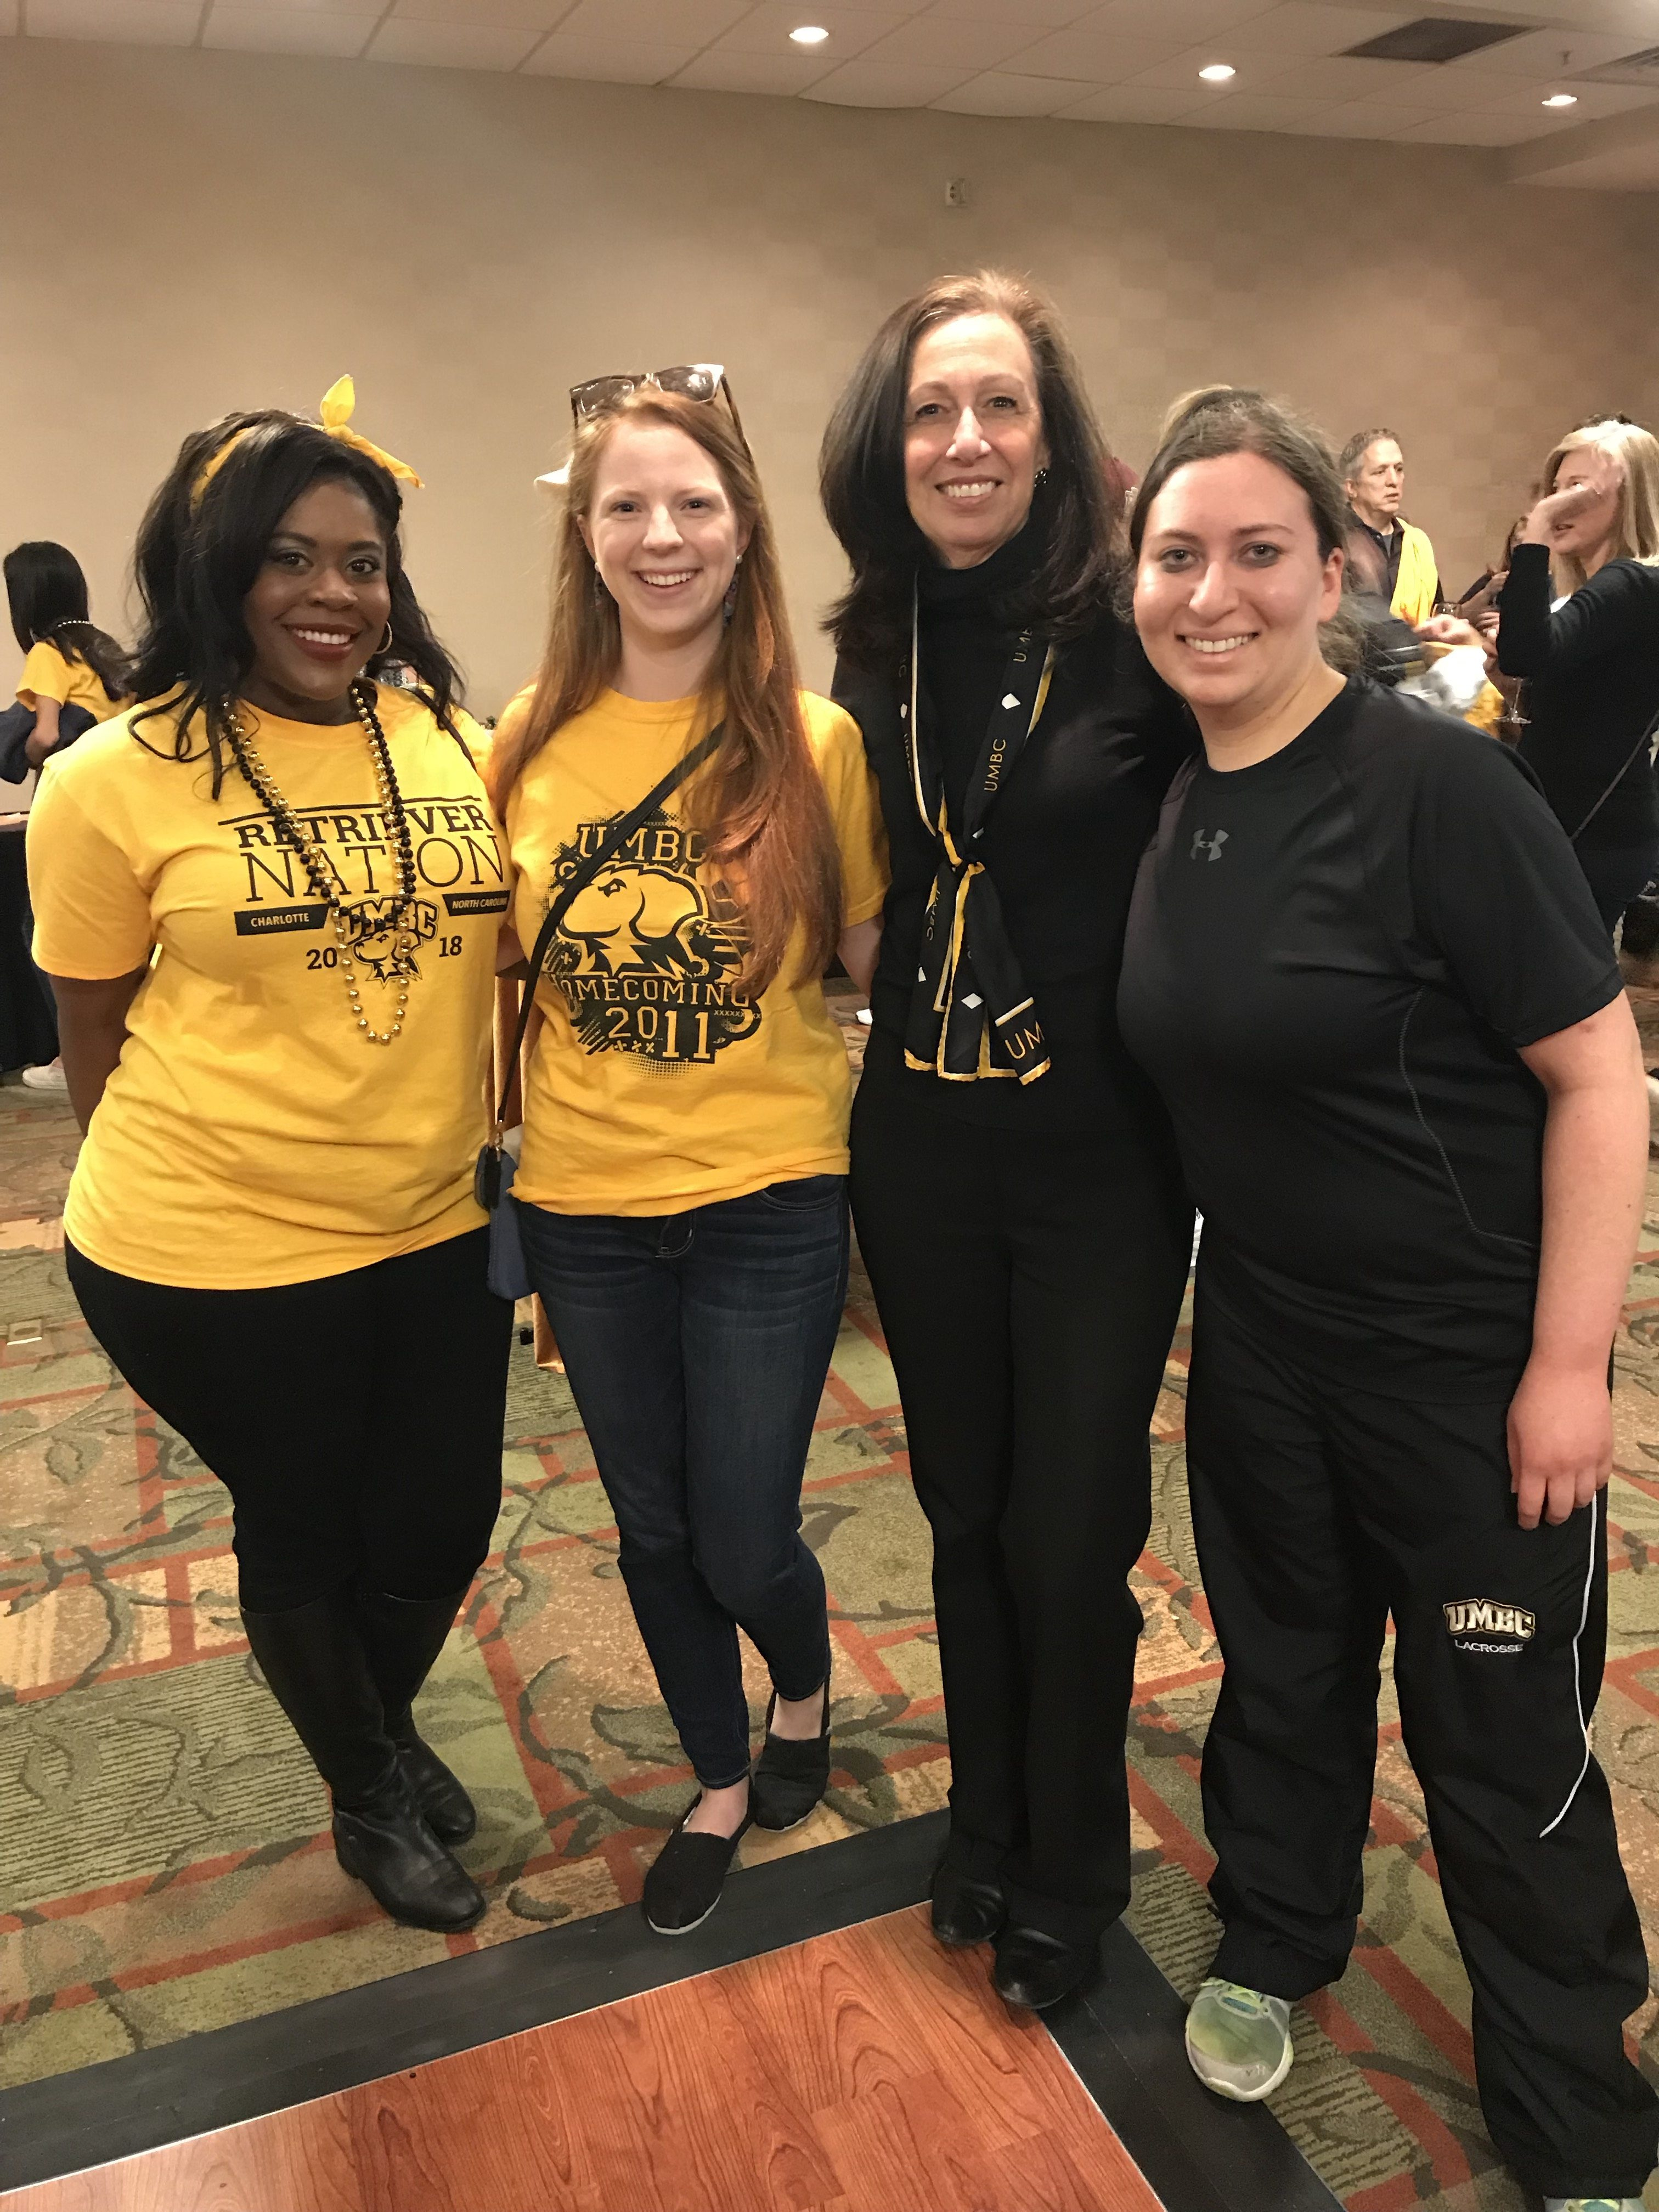 Nancy Young poses with others in UMC gear